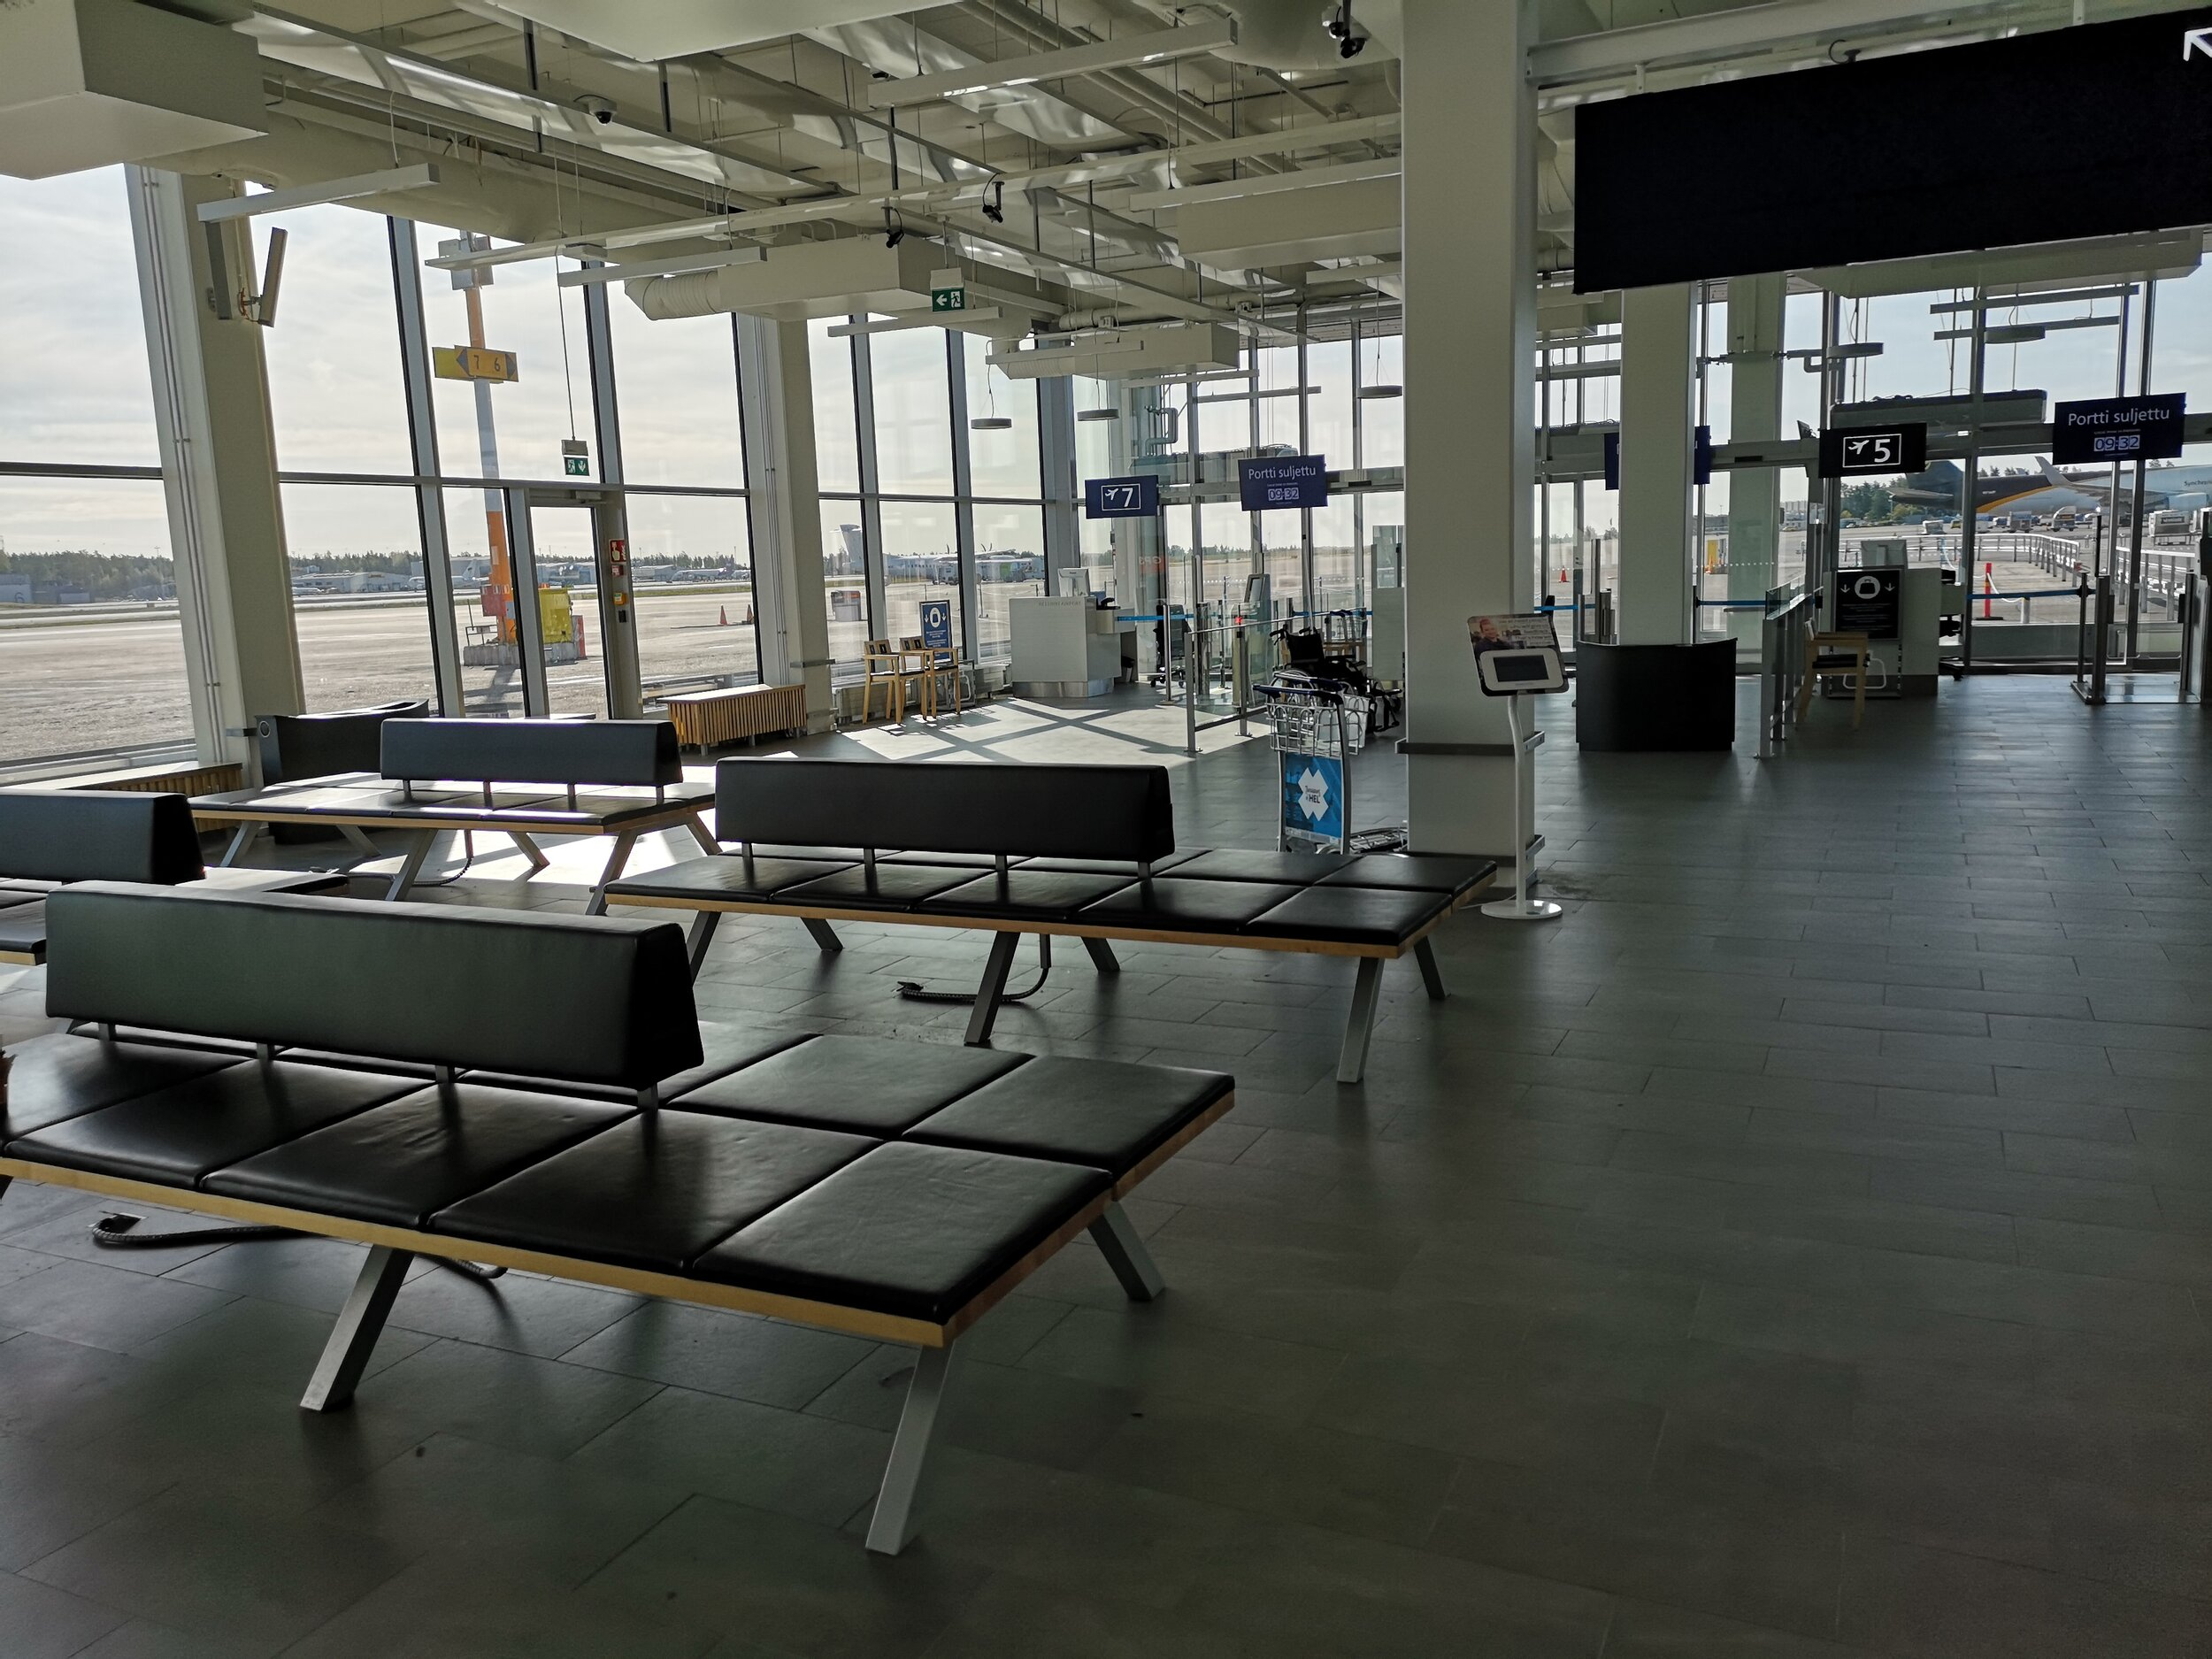 Helsinki airport on a quiet Monday afternoon.